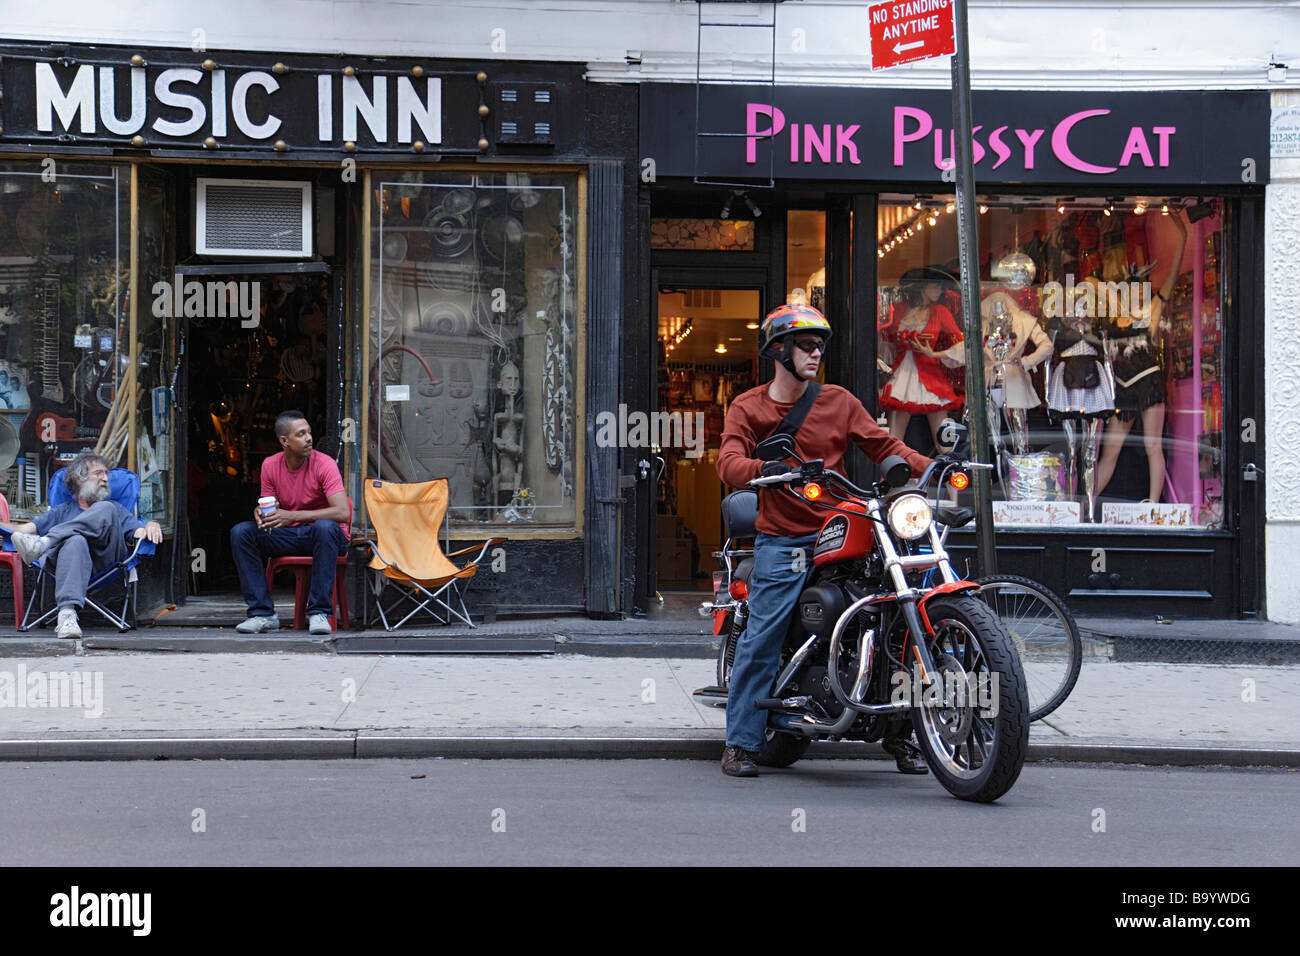 Man riding a bike Greenwich Village Manhattan New York City New York USA - Stock Image